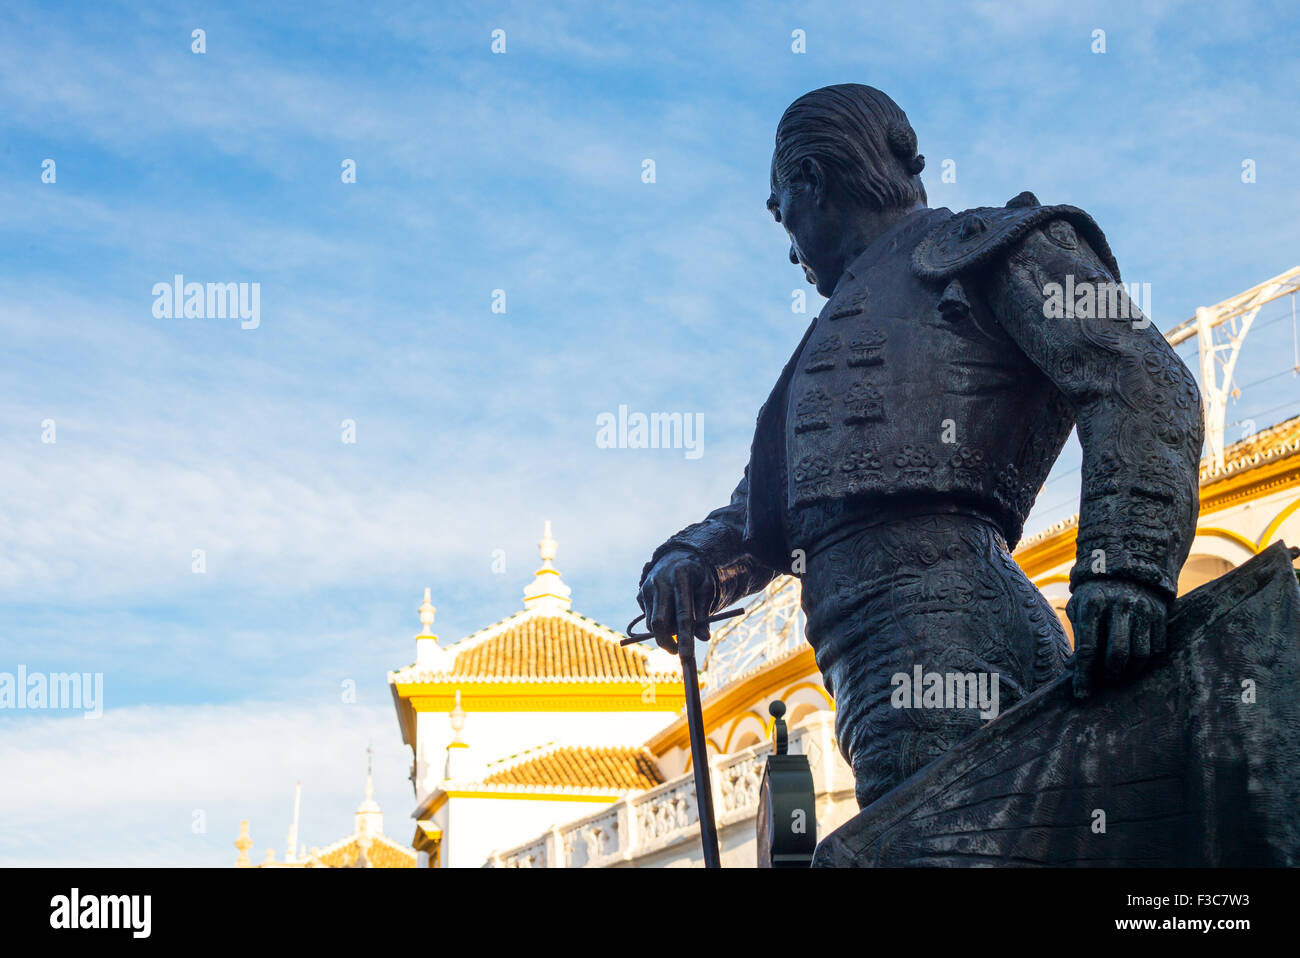 Spain, Andalusia, Seville, the bullfighter statue in front of the Plaza de Toros (Bullring) and Real Maestranza - Stock Image